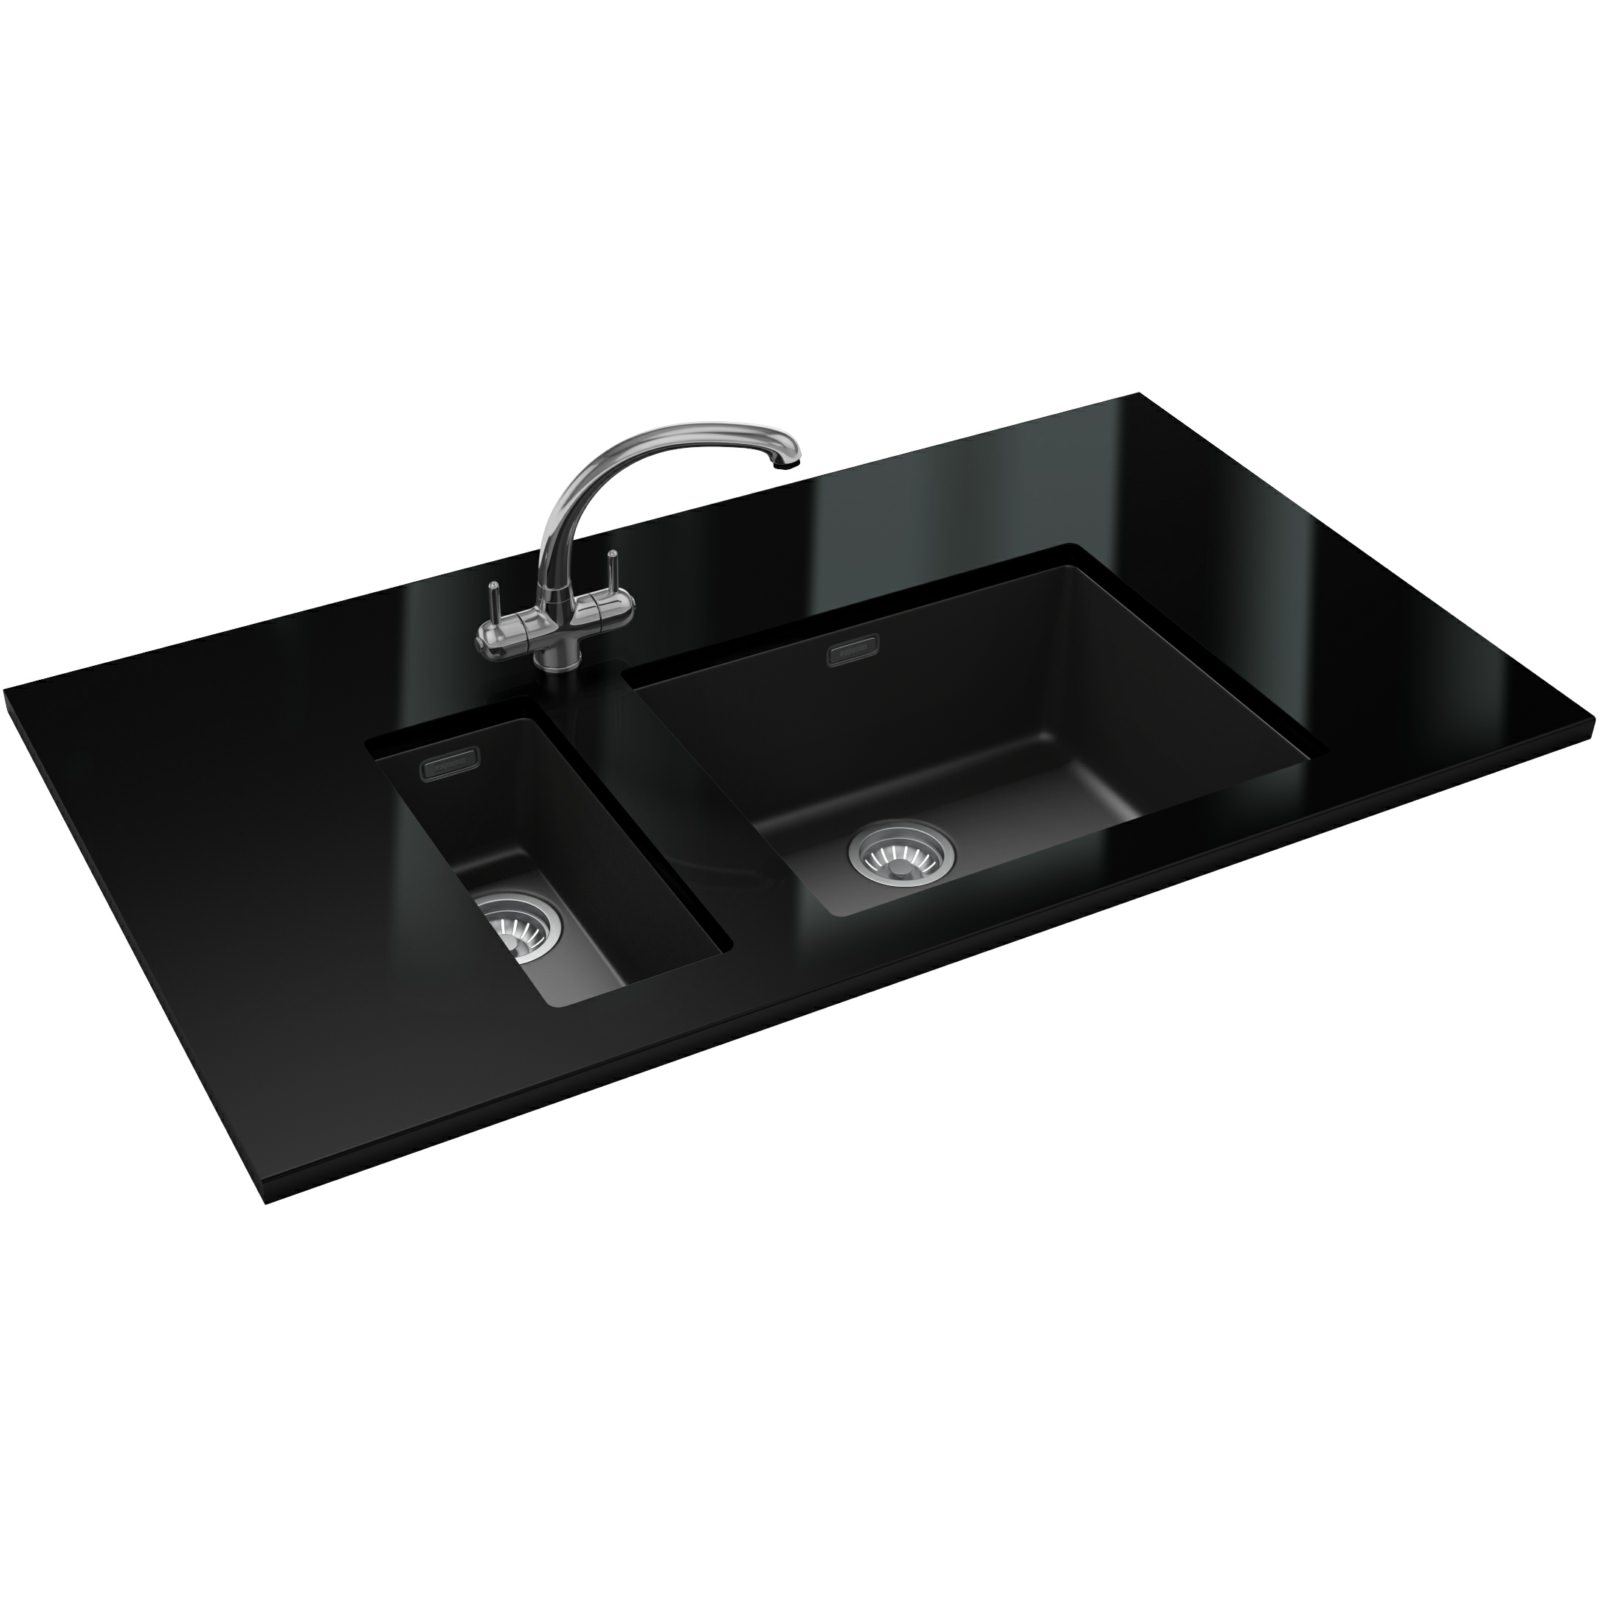 110 50 tectonite carbon black 1 0 bowl undermount sink 125 0252 223